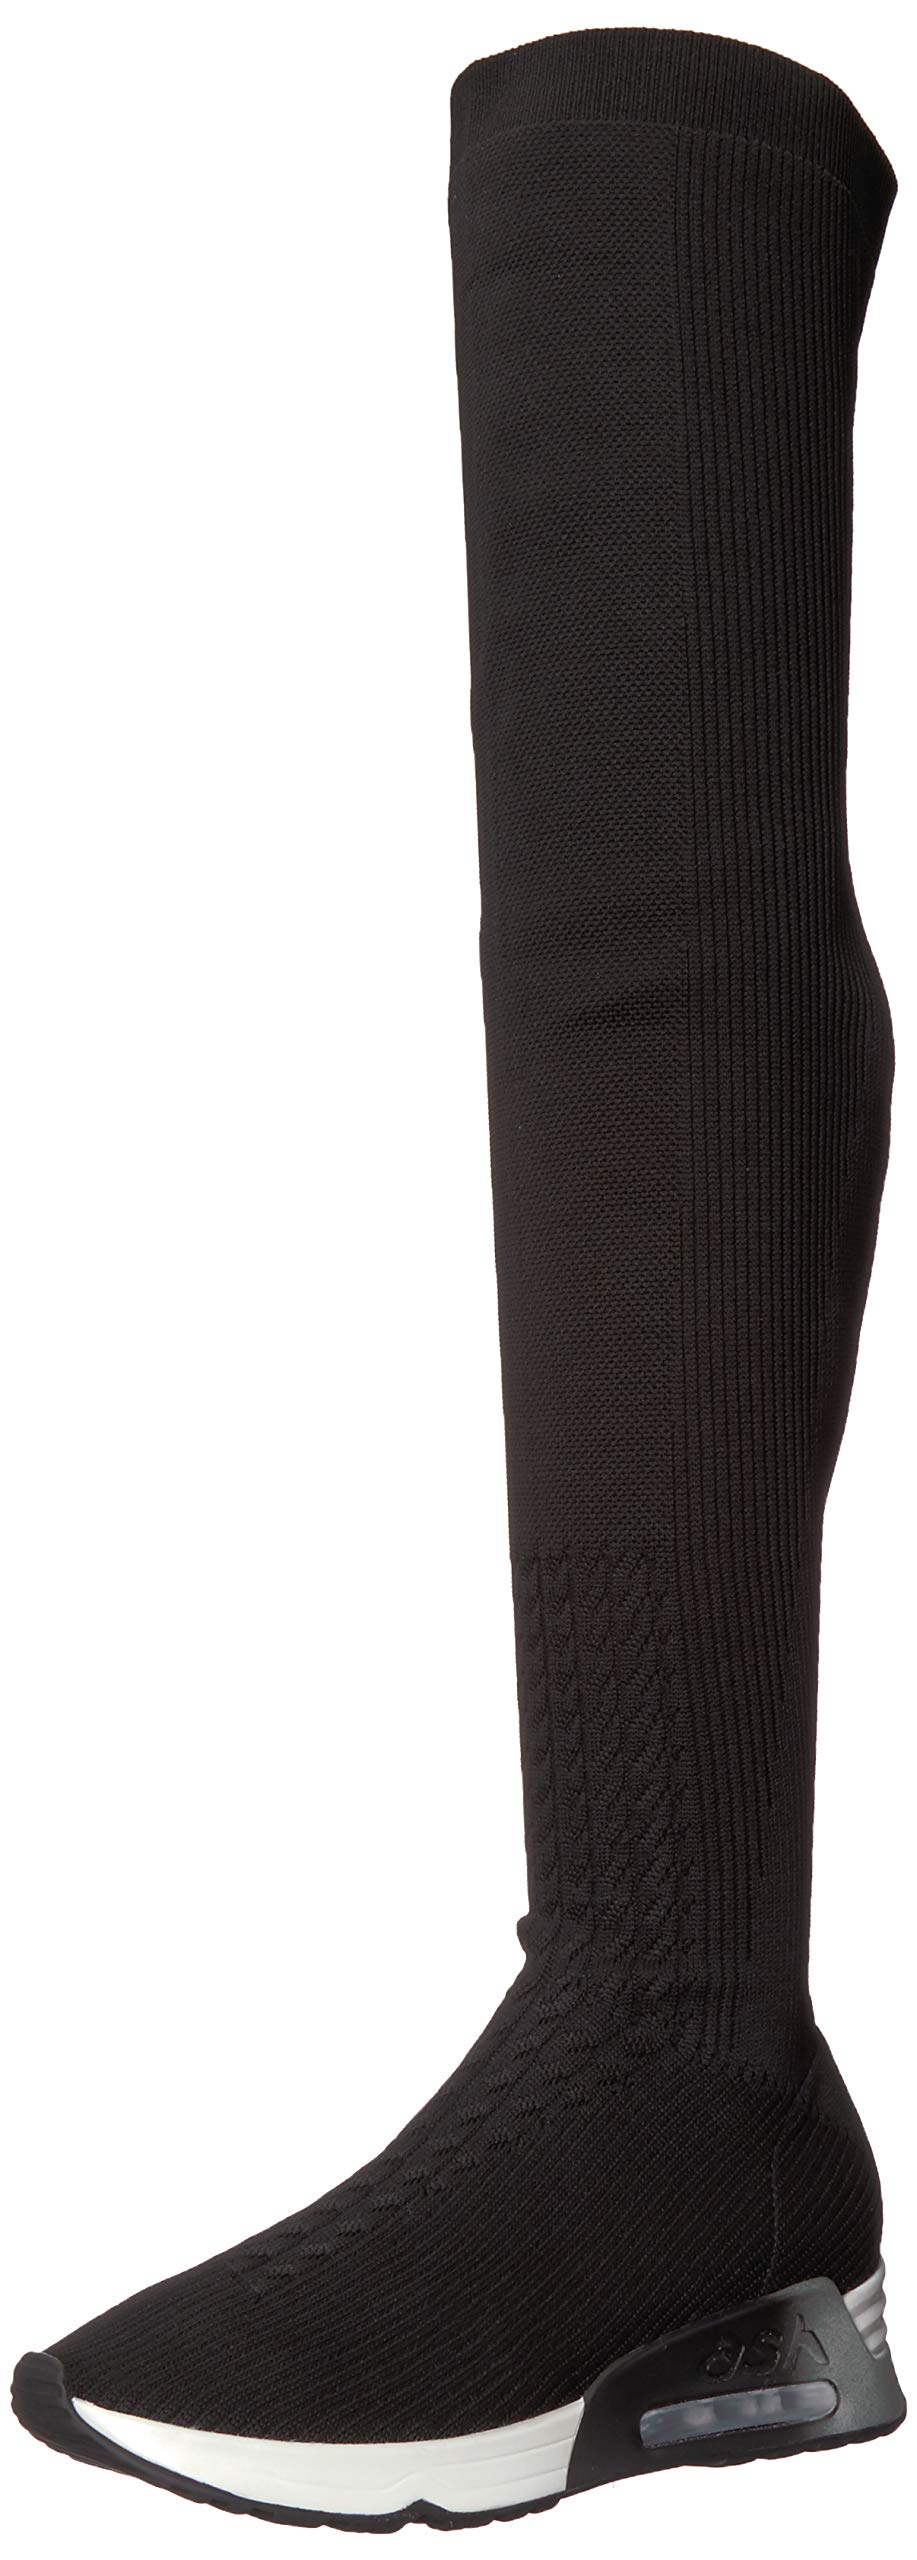 Ash Women's AS-LOLA Over The Over The Knee Boot Black 38 M EU (8 US)